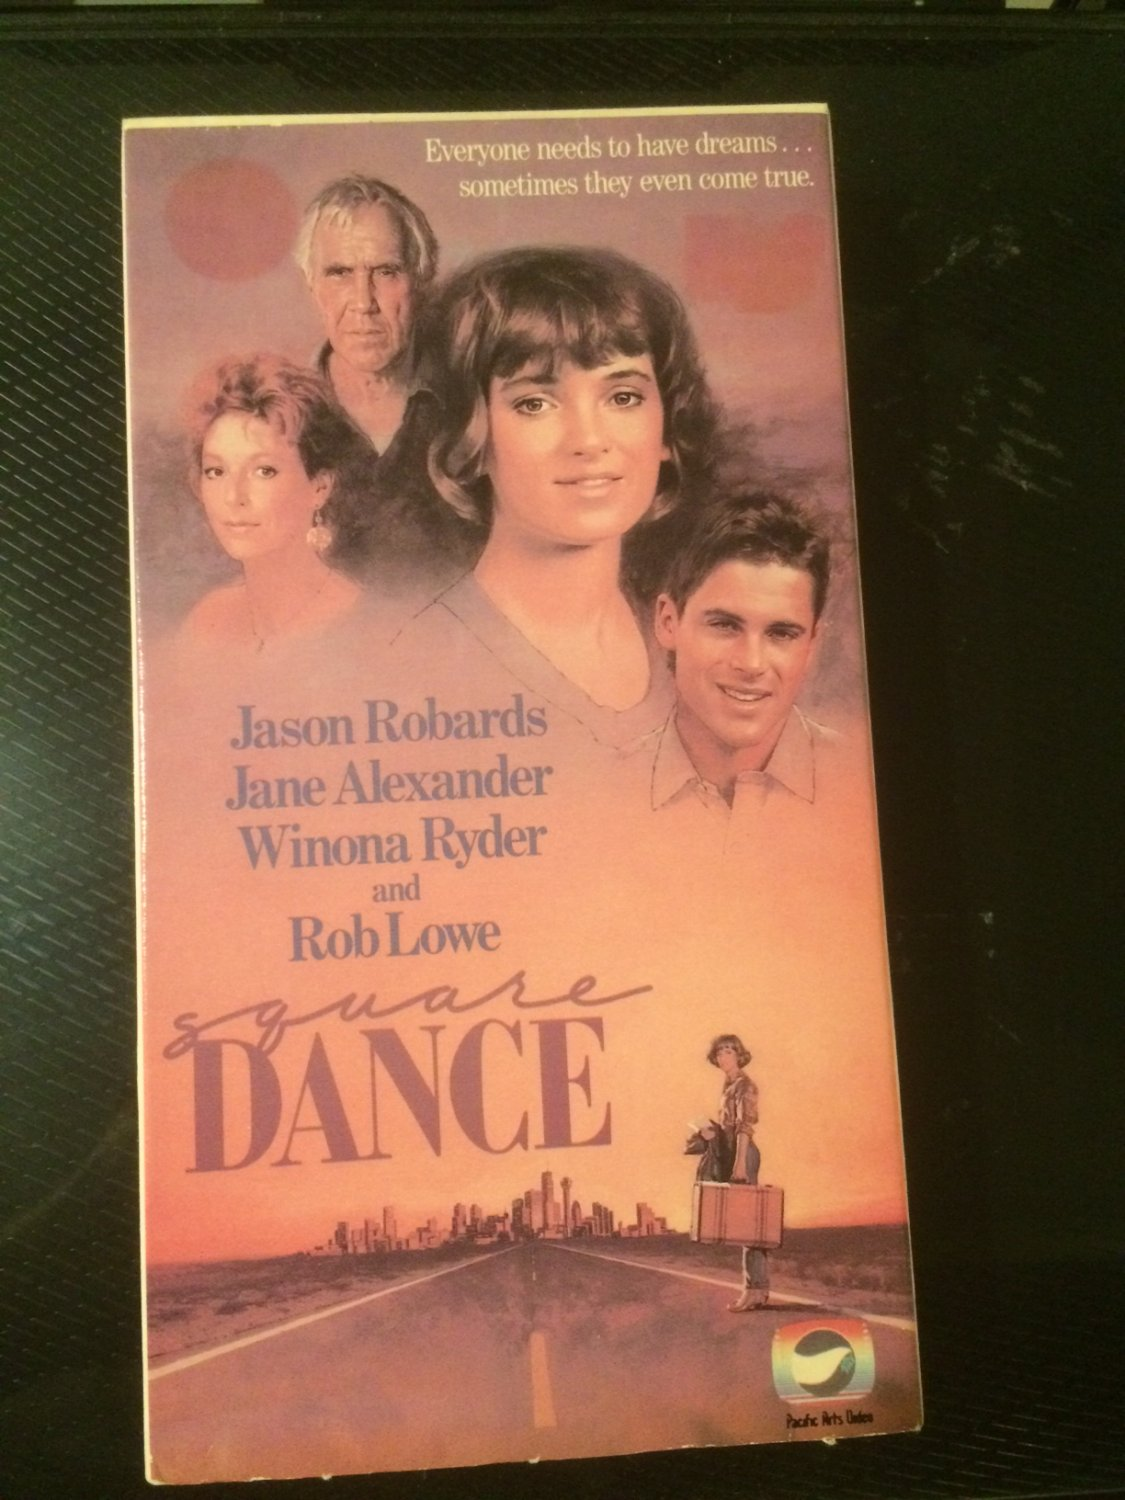 Square Dance - Used - VHS - OOP ON DVD